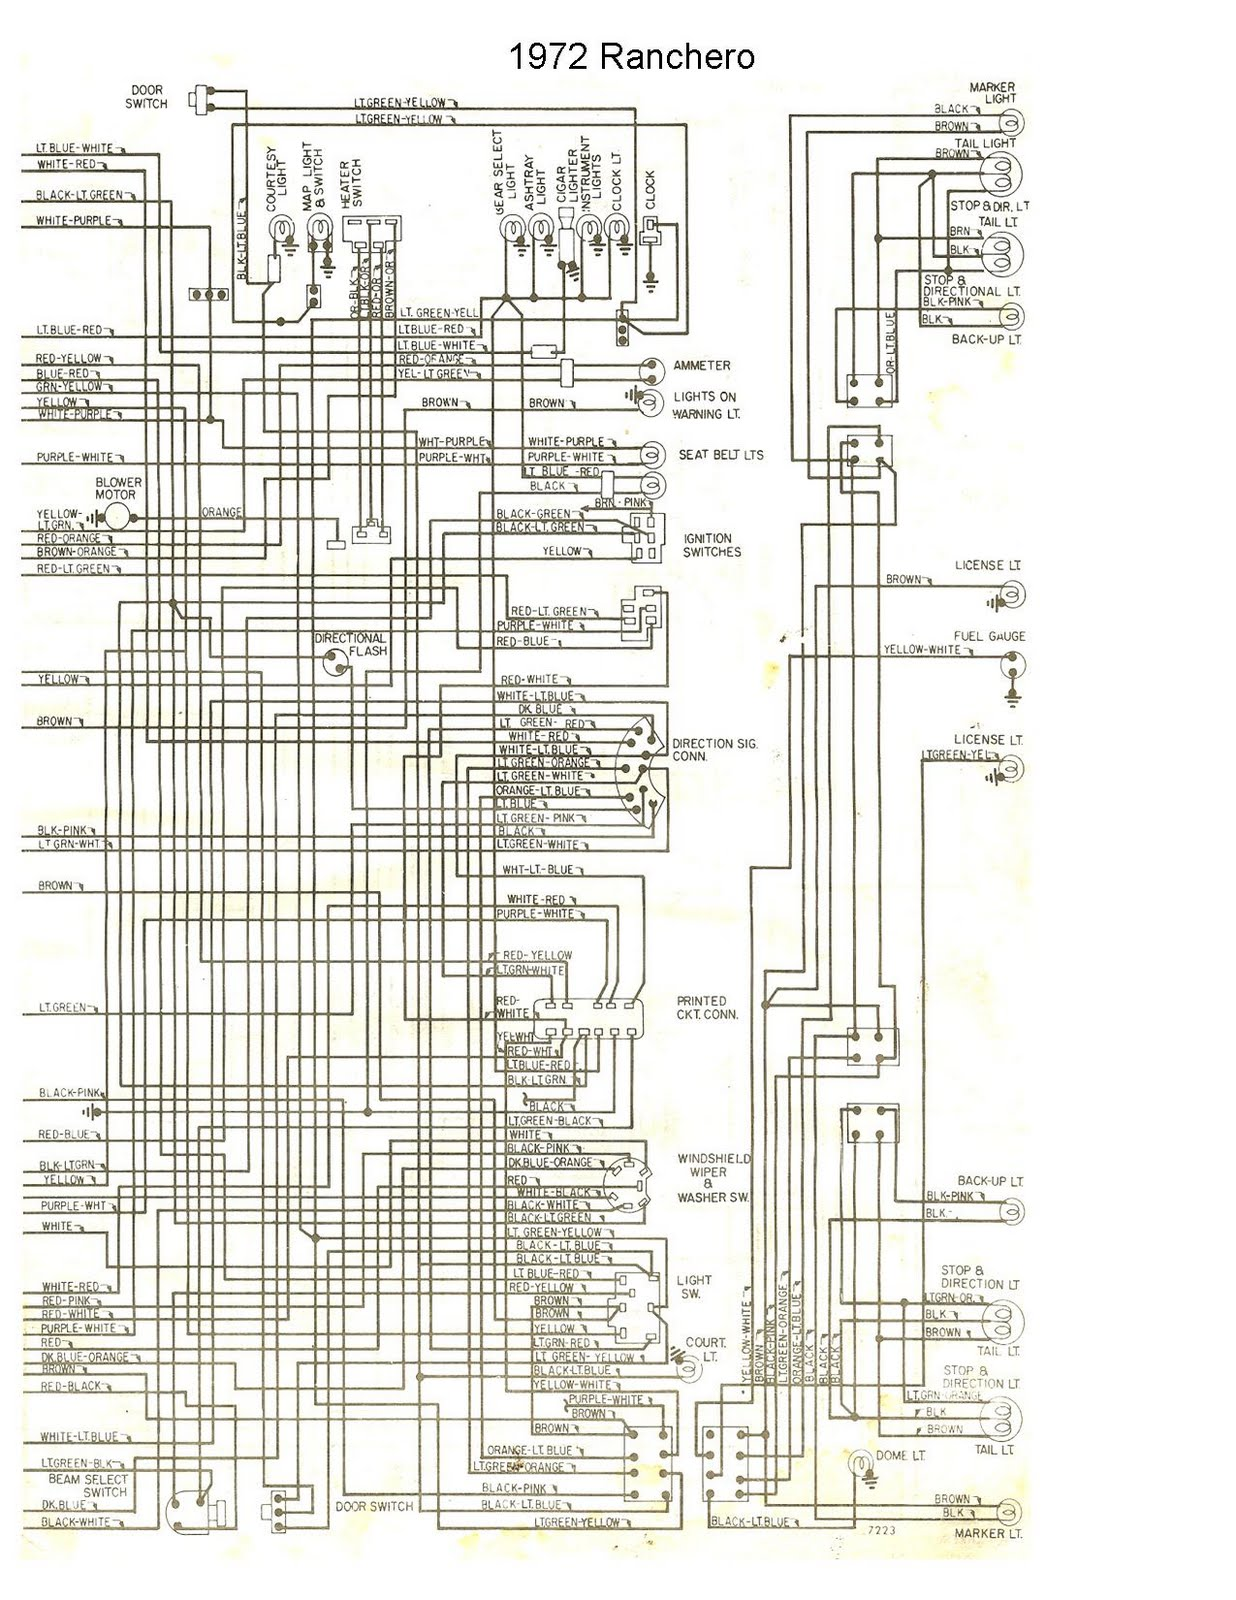 wiring schematic diagram ford ranchero 1972 1976 ford torino wiring diagram honda wiring diagram \u2022 wiring 1971 ford torino ignition wiring diagram at bayanpartner.co